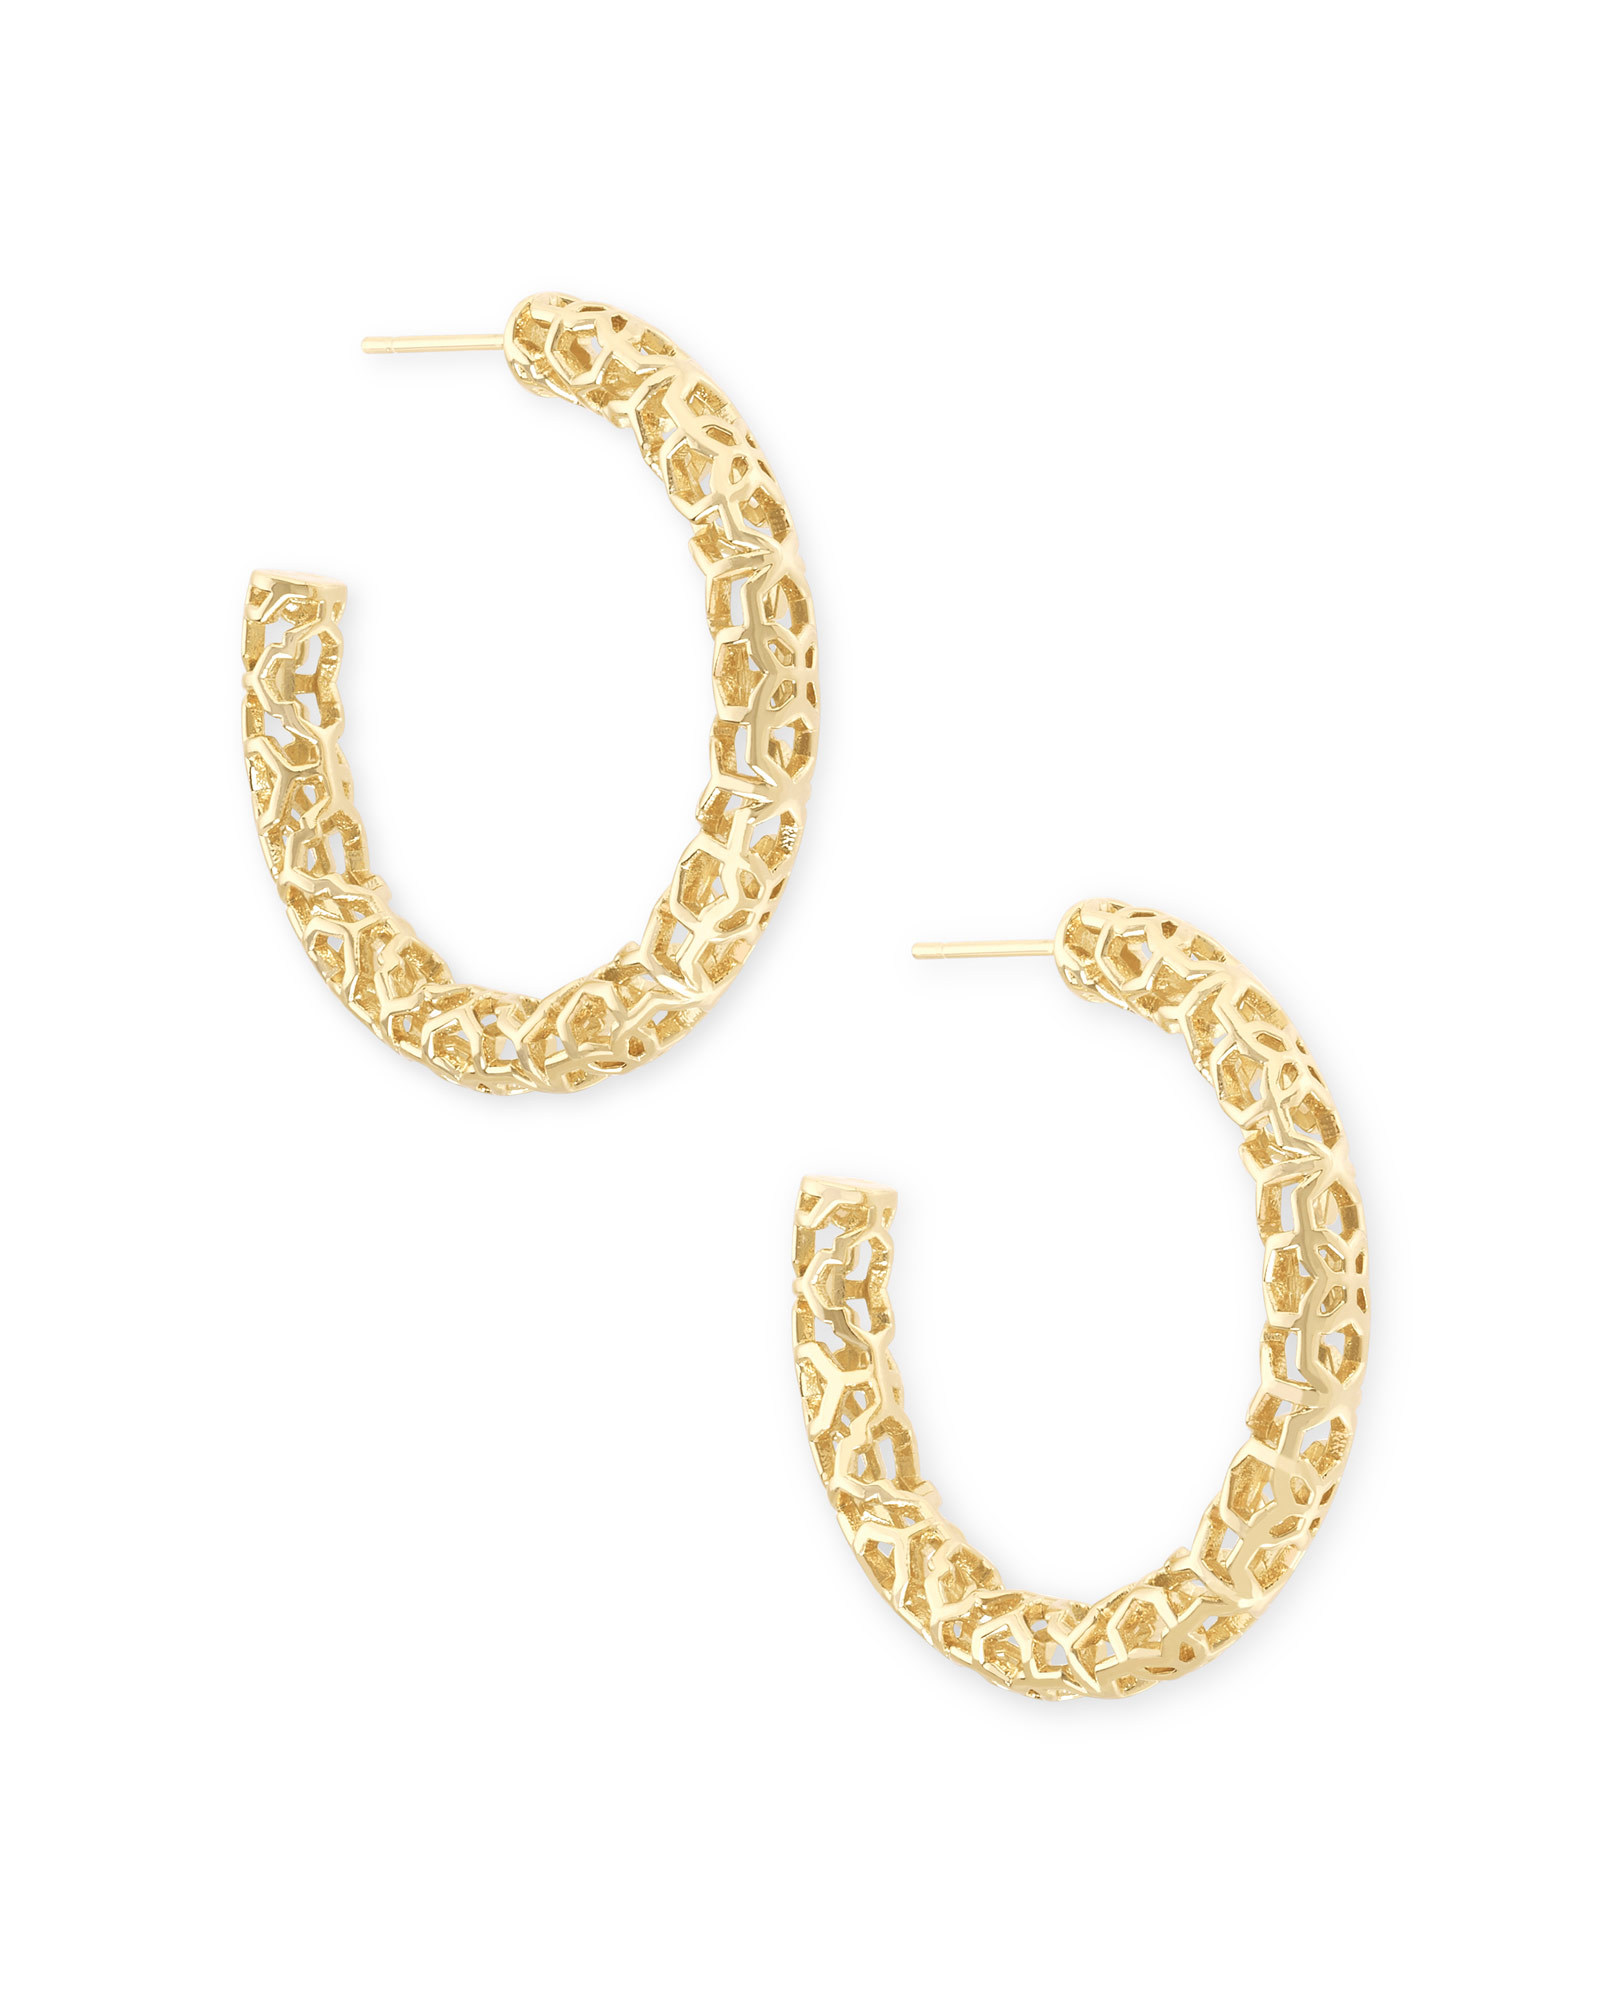 Kendra Scott | Shop Jewelry for Women, Home Décor and Beauty